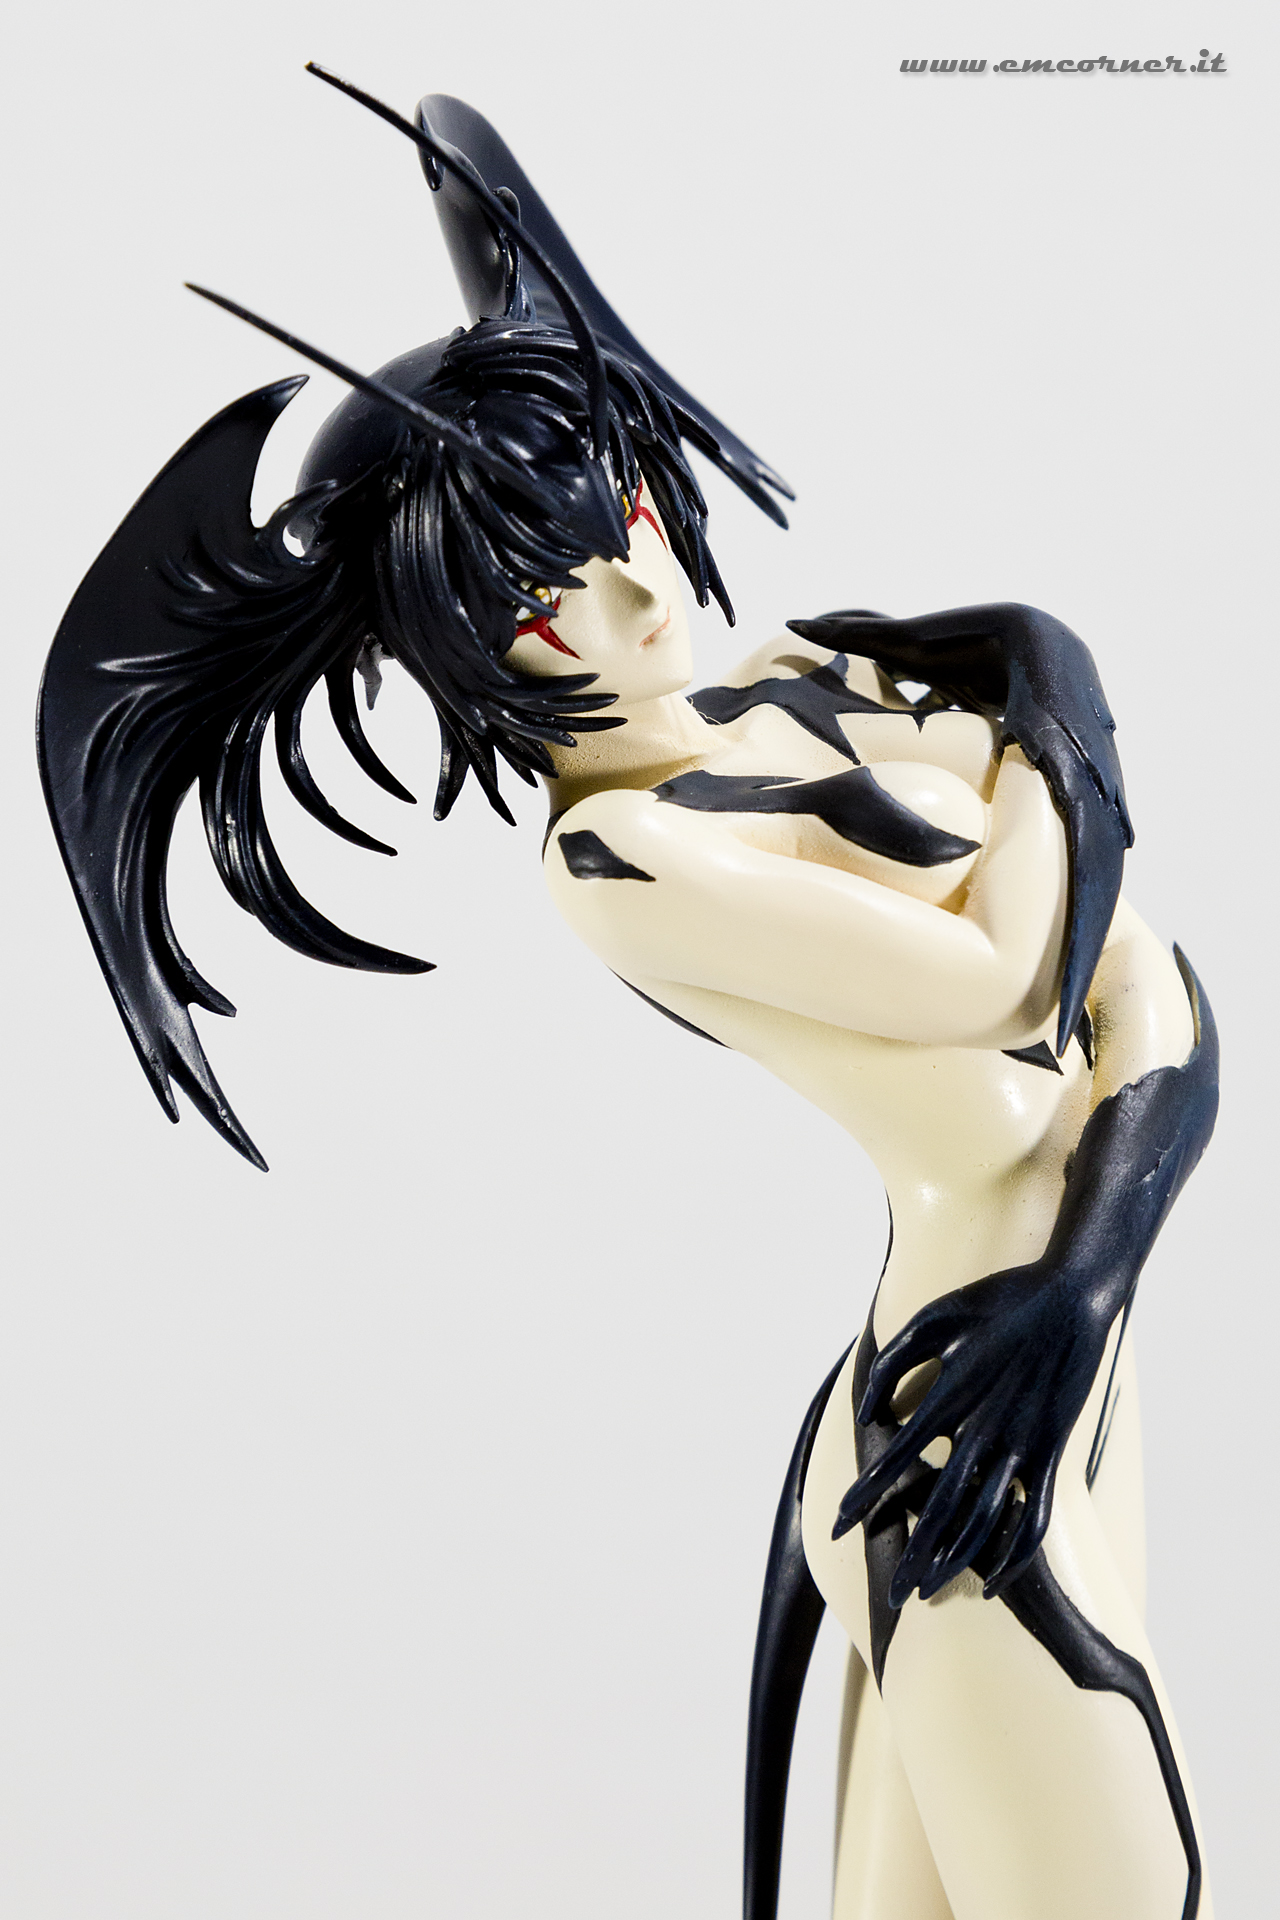 new-line-devilman-devil-lady-pre-painted-coldcast-2_-emcorner-it_-2